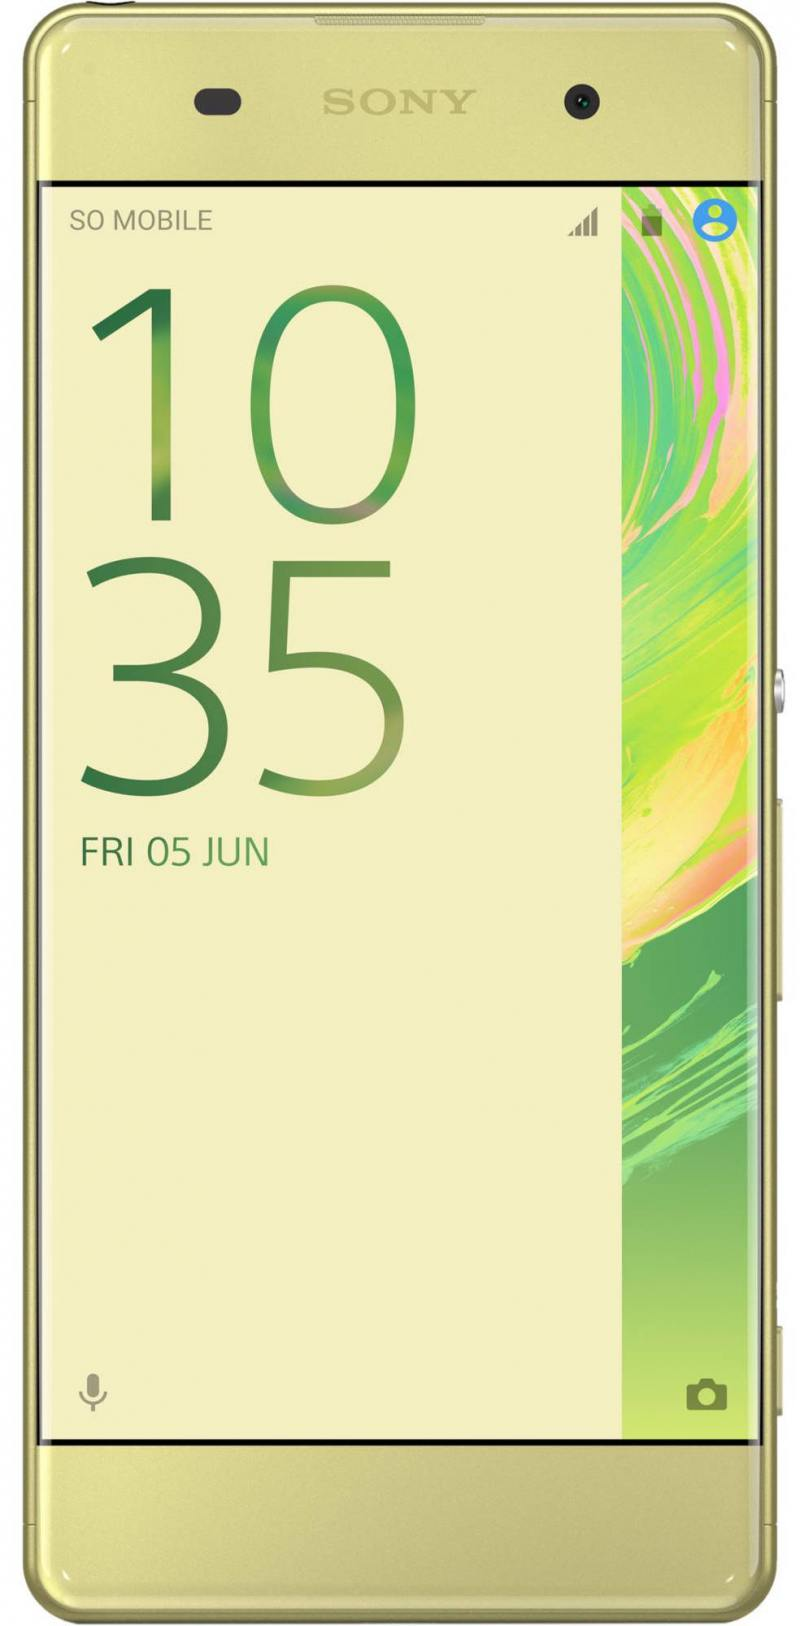 Смартфон SONY Xperia XA (F3111) Lime Gold MediaTek MT6755/2 Гб/16 Гб/5 (1280x720)/3G/4G/BT/Android 6.0 смартфон sony xperia xa ultra lime gold android 6 0 marshmallow mt6755 2000mhz 6 0 1920x1080 3072mb 16gb 4g lte [f3211lime gold]